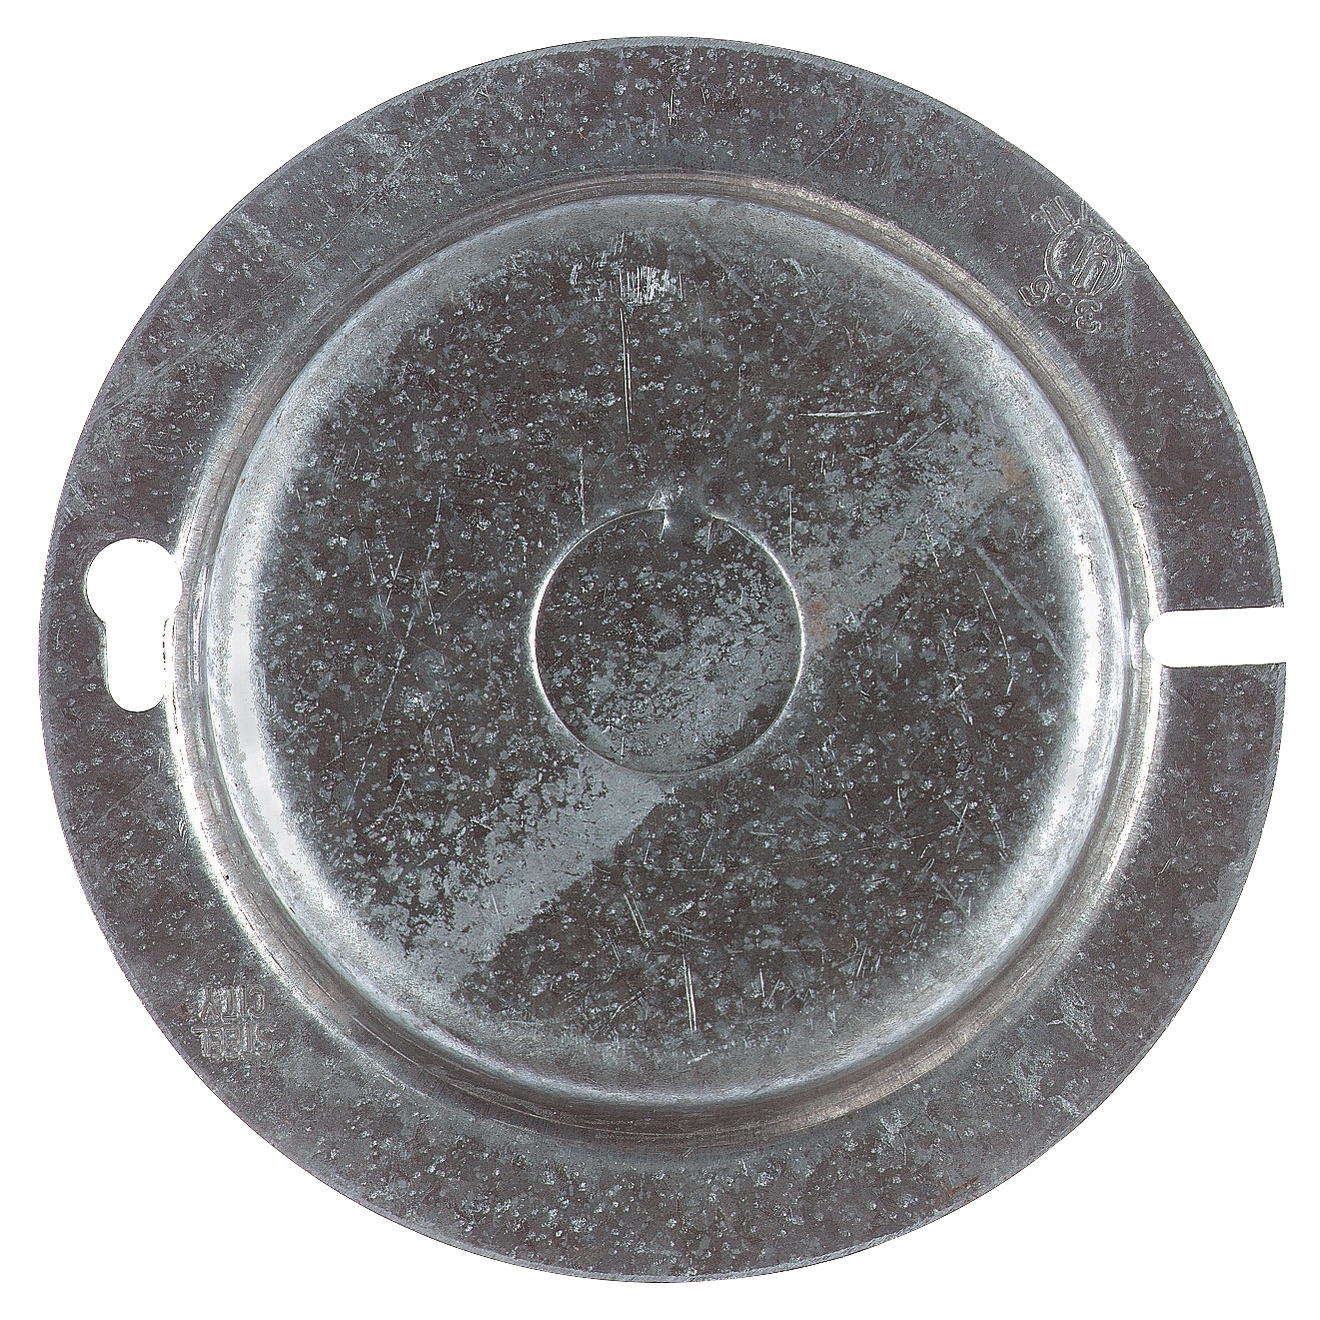 Steel City,54-C-7,Steel City® 54-C-7 Outlet Round Box Cover With Knockouts, 4 in Dia, Steel